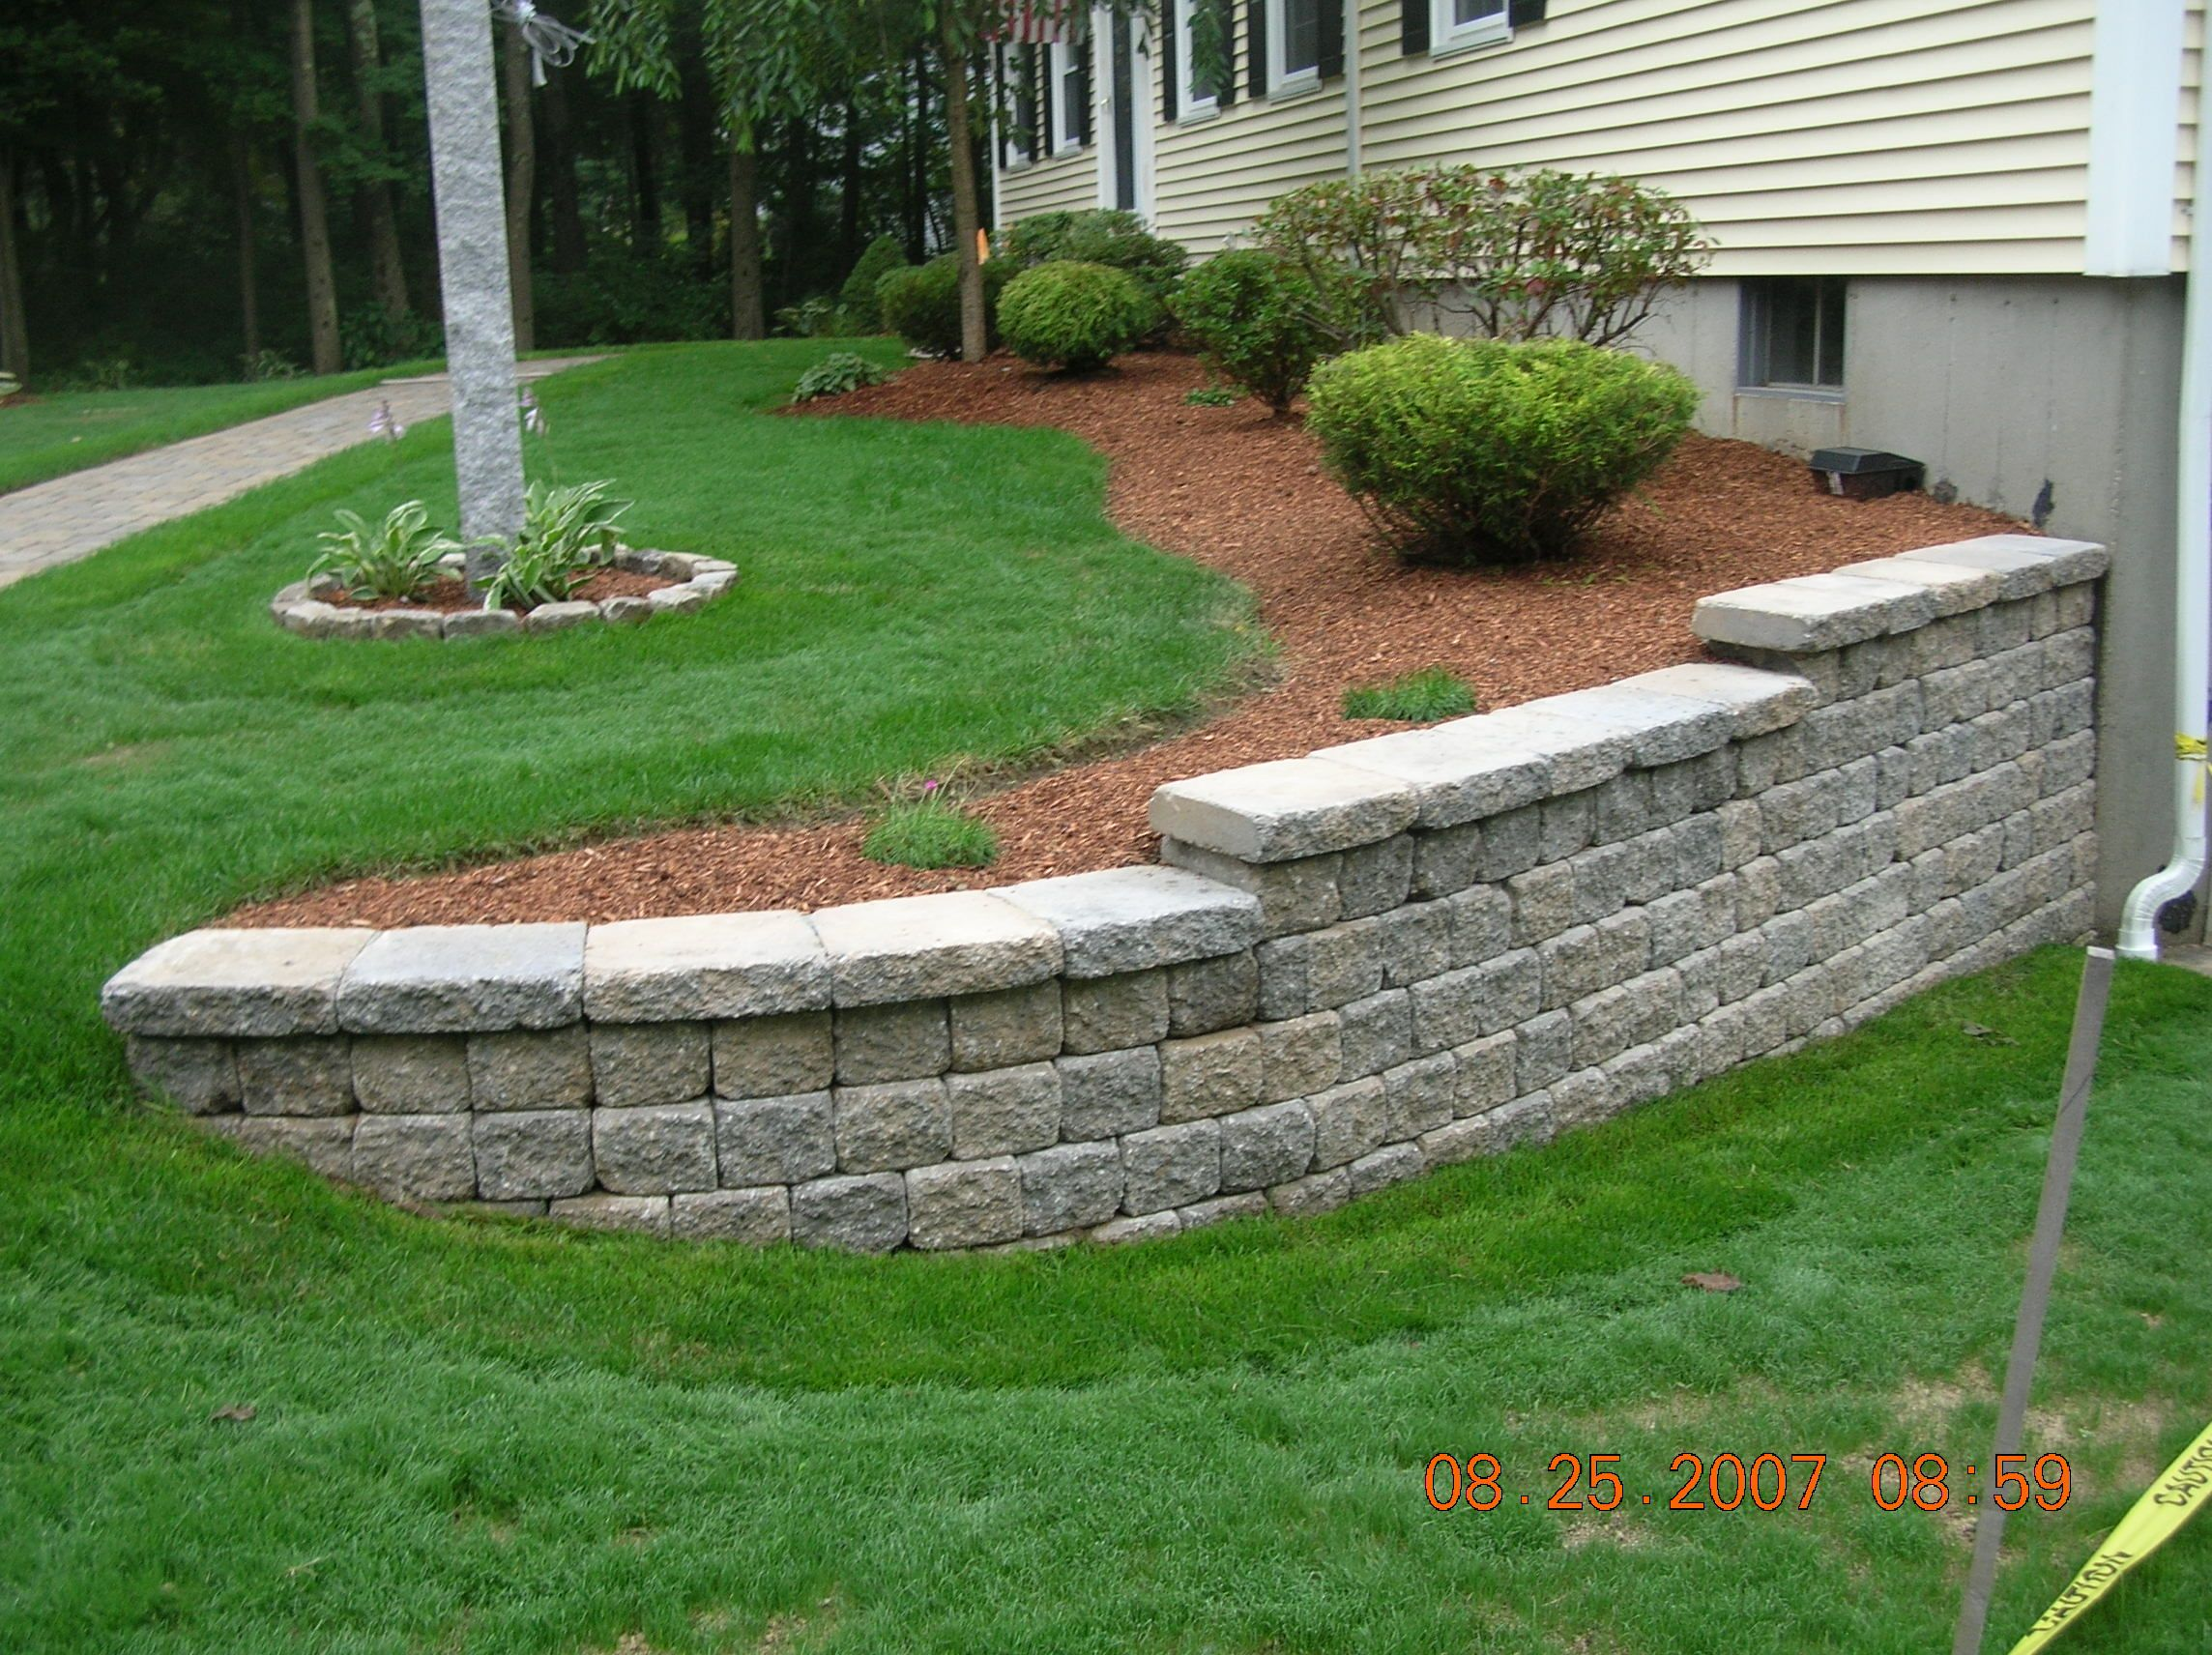 Superb wall landscaping 2 landscape retaining wall blocks for Landscape retaining wall design